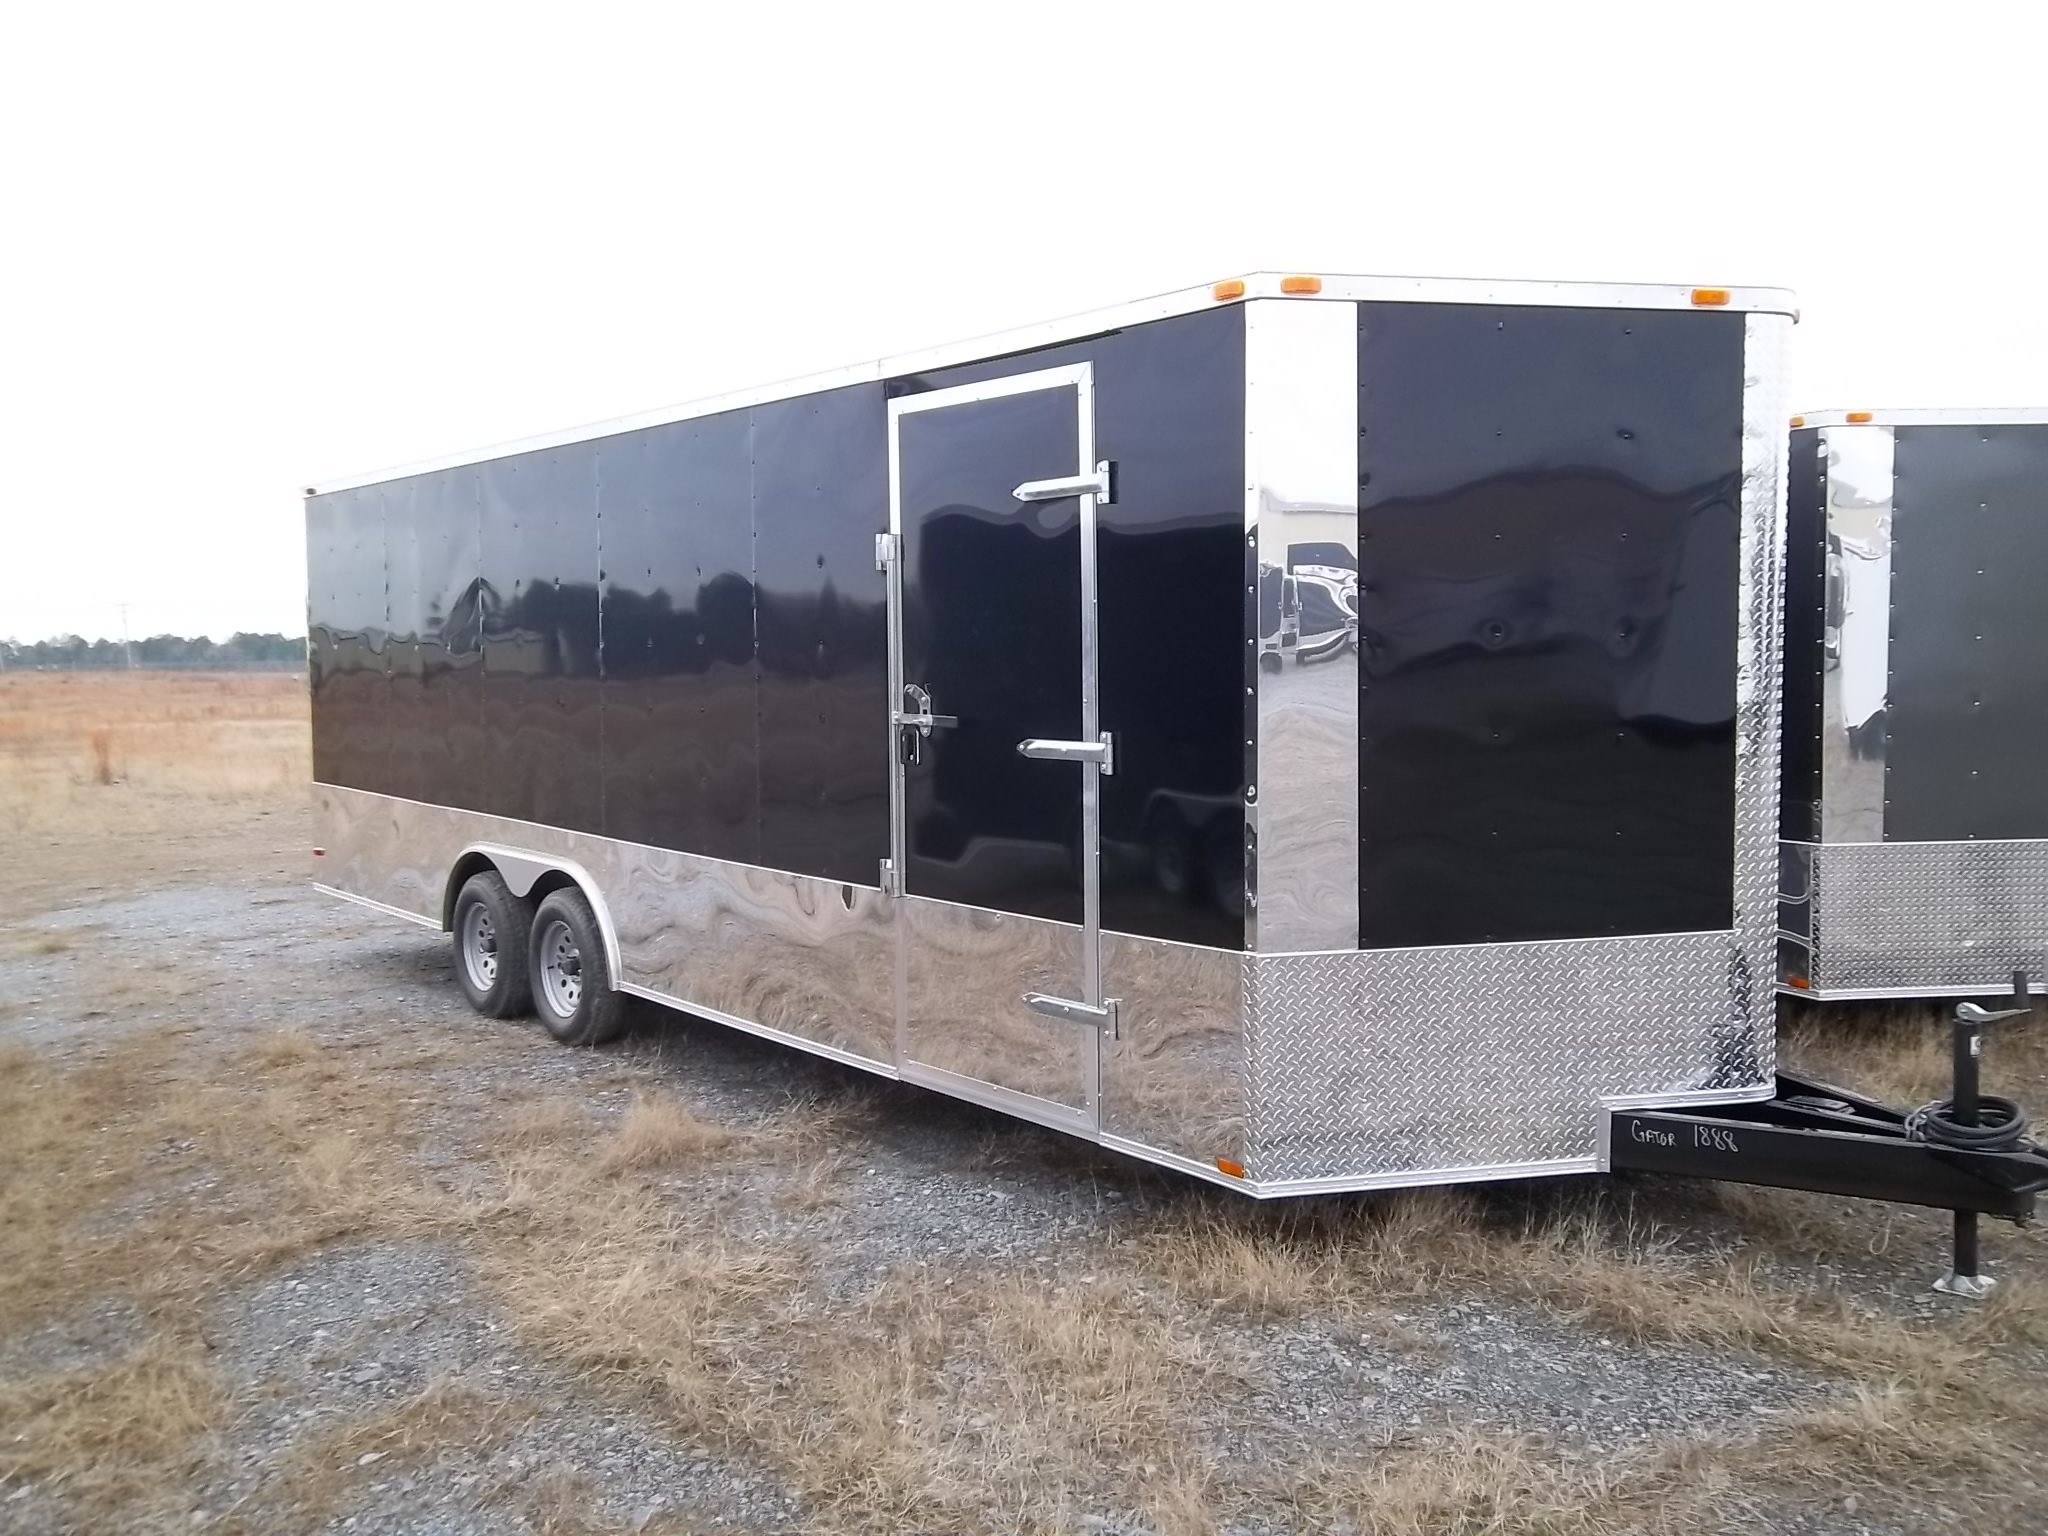 Car Haulers Enclosed Trailers For Lessenclosed Trailers